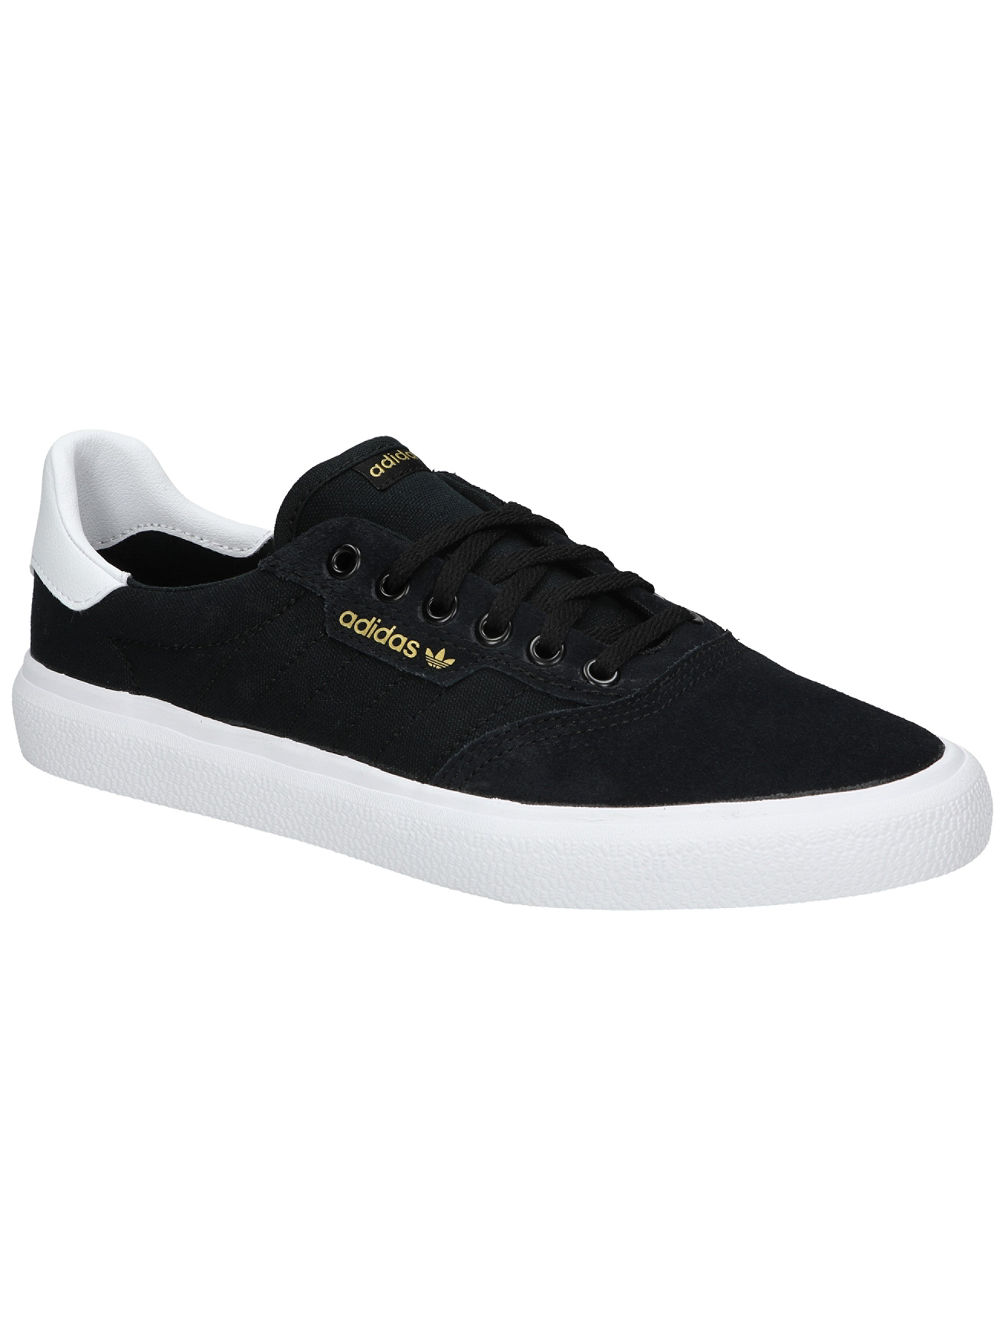 3MC Skate Shoes